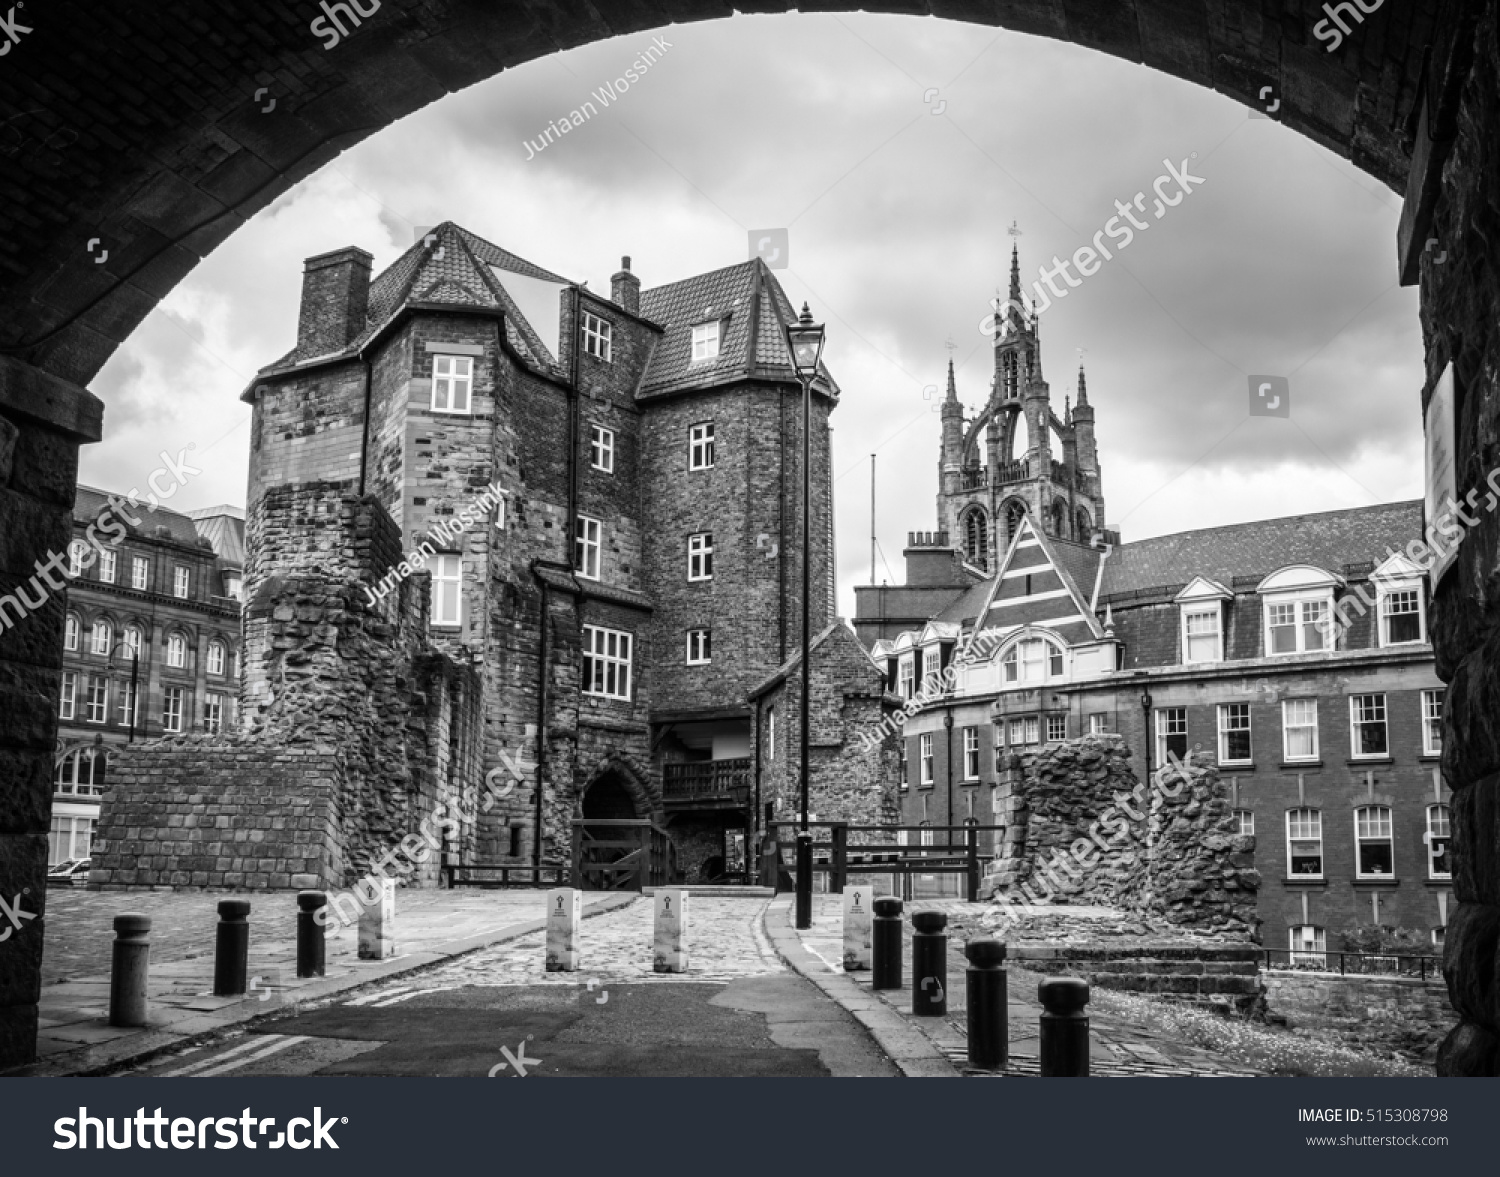 New castle upon tyne united kingdom july 25 2015 black gate of